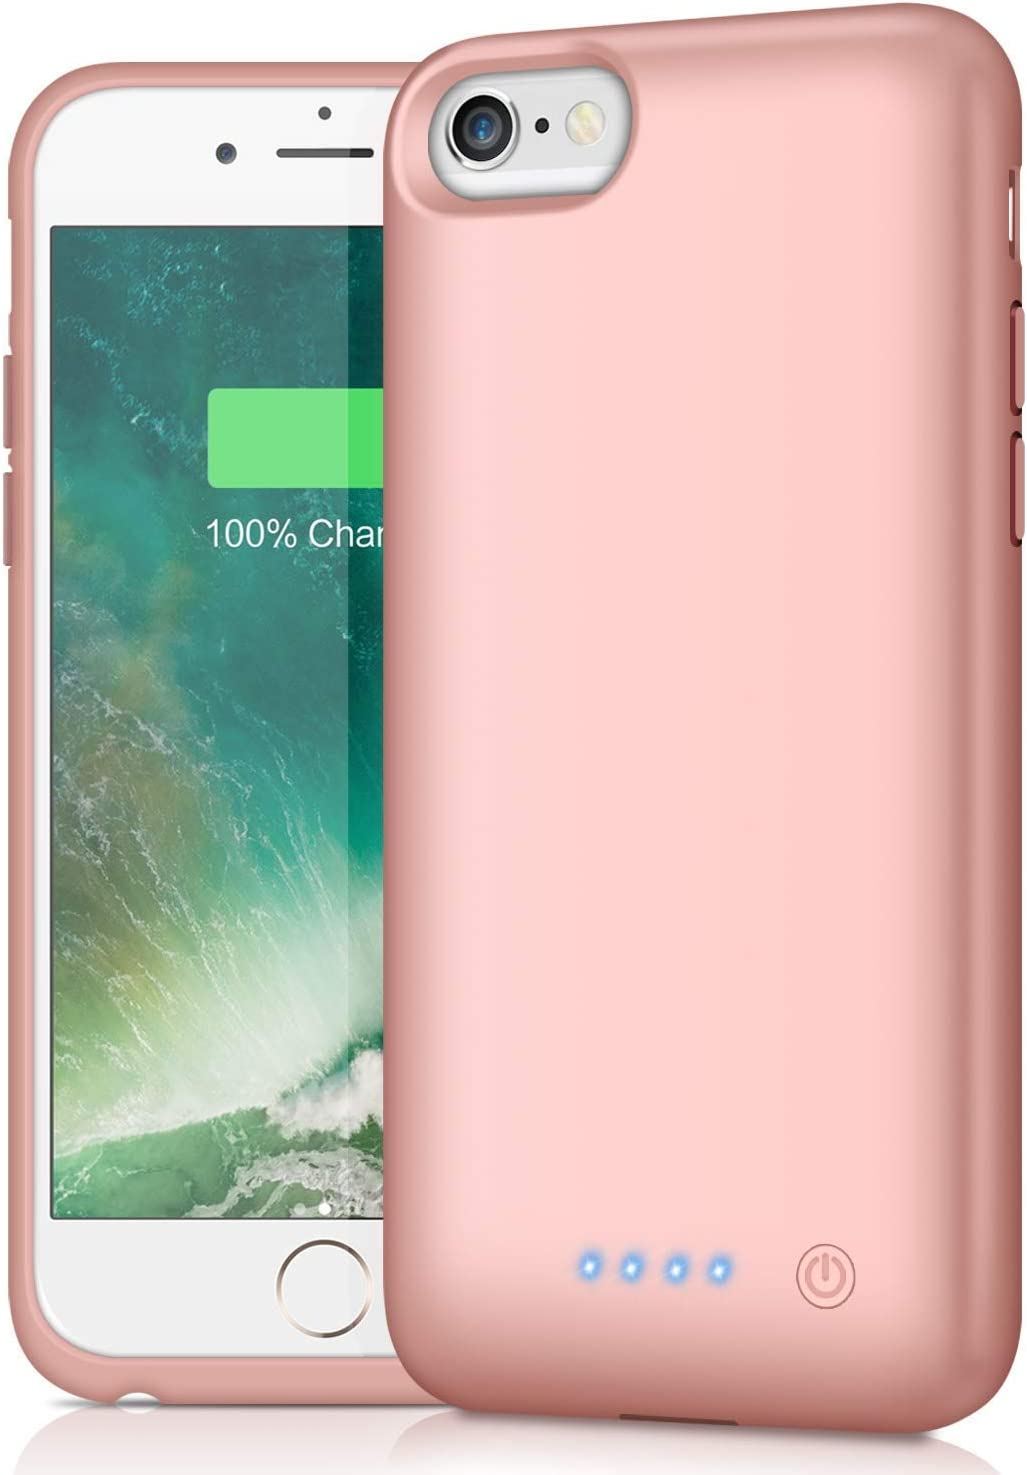 Battery Case for iPhone 6/6s/7/8, [Upgraded 6000mAh] Ekrist Portable Ultra-Slim Protective Charging Case, Extended Rechargeable Smart Battery Pack, Backup Charger Case Power Bank Cover (Rose Gold)